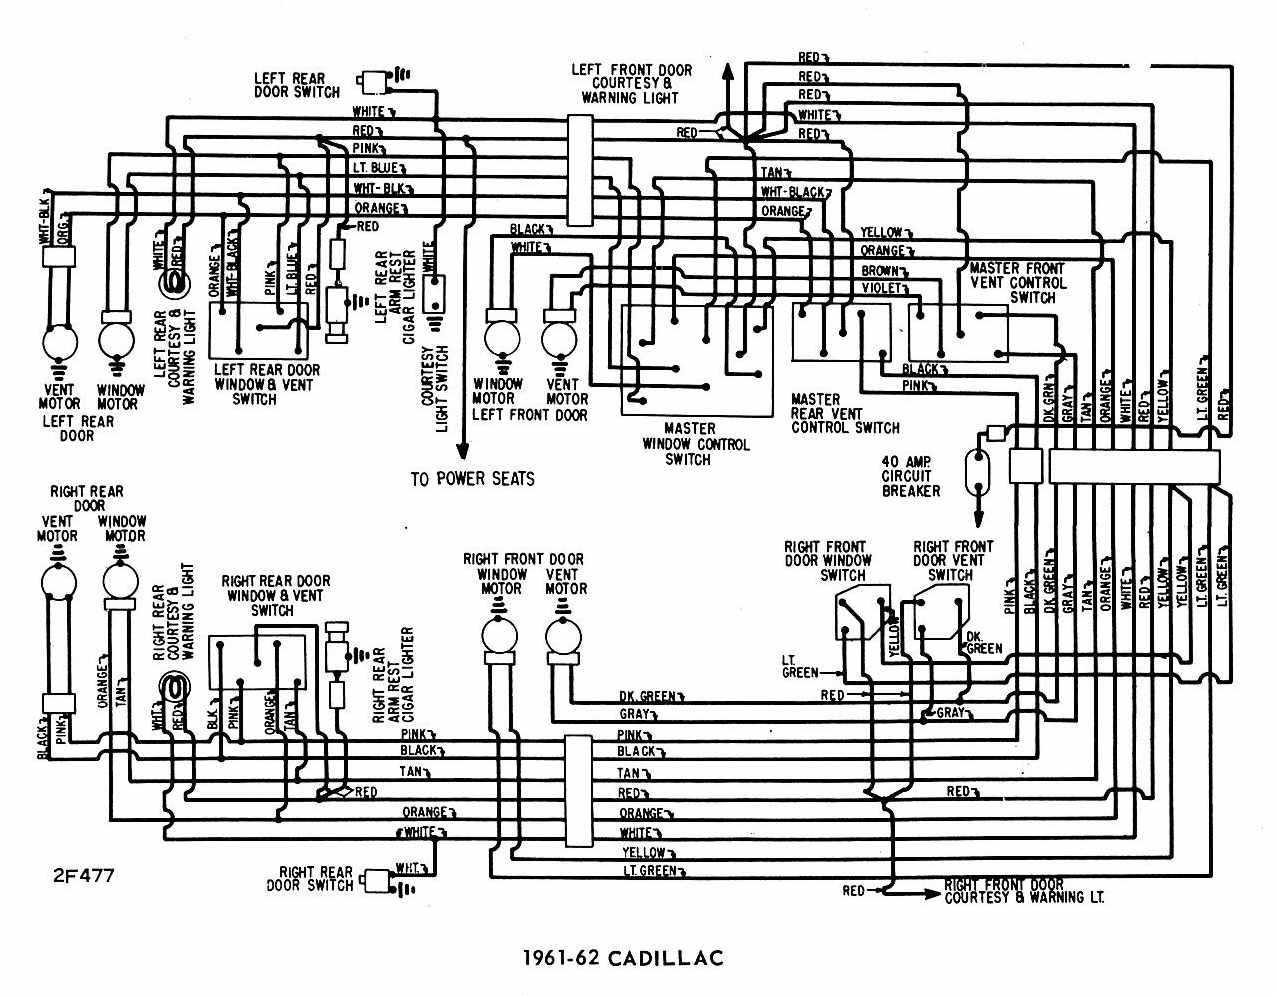 2004 Cadillac Cts Fuse Box Wiring Library Engine Diagram Free Vehicle Diagrams U2022 Rh Generalinfo Co 2003